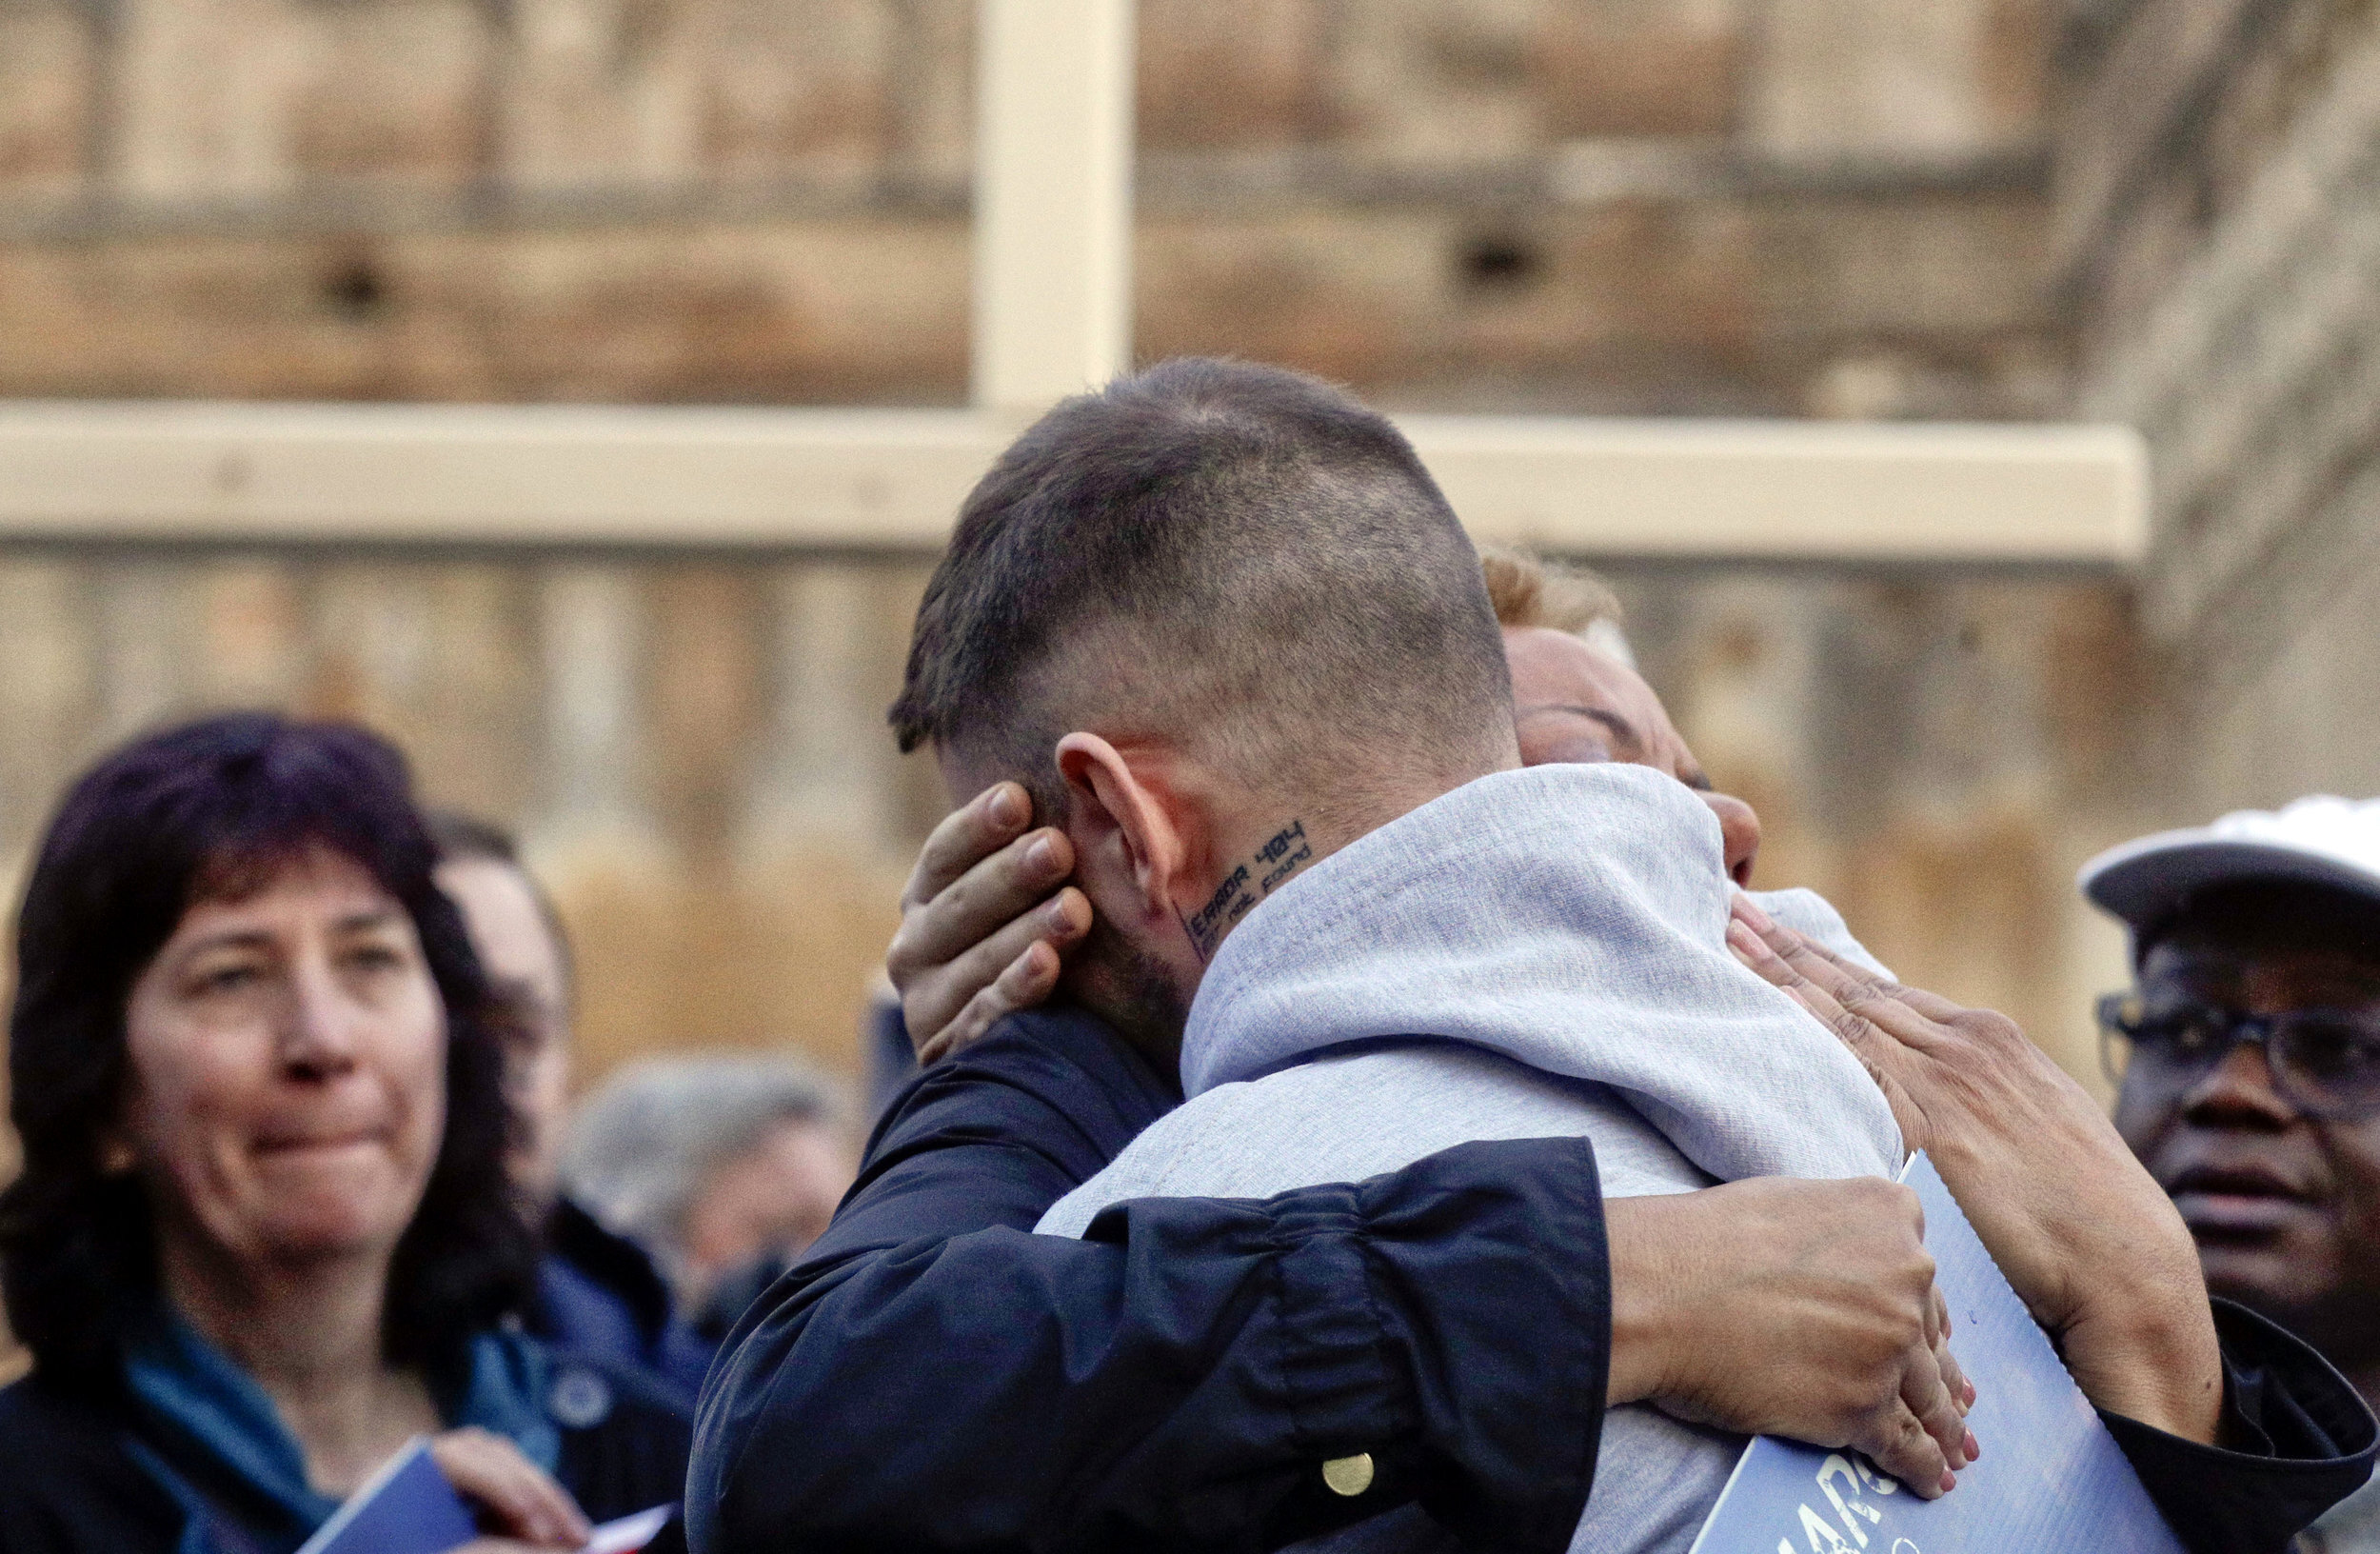 Survivors of childhood sex abuse hug during a sex abuse prevention summit at the Vatican earlier this year. AP Photo/Gregorio Borgia.